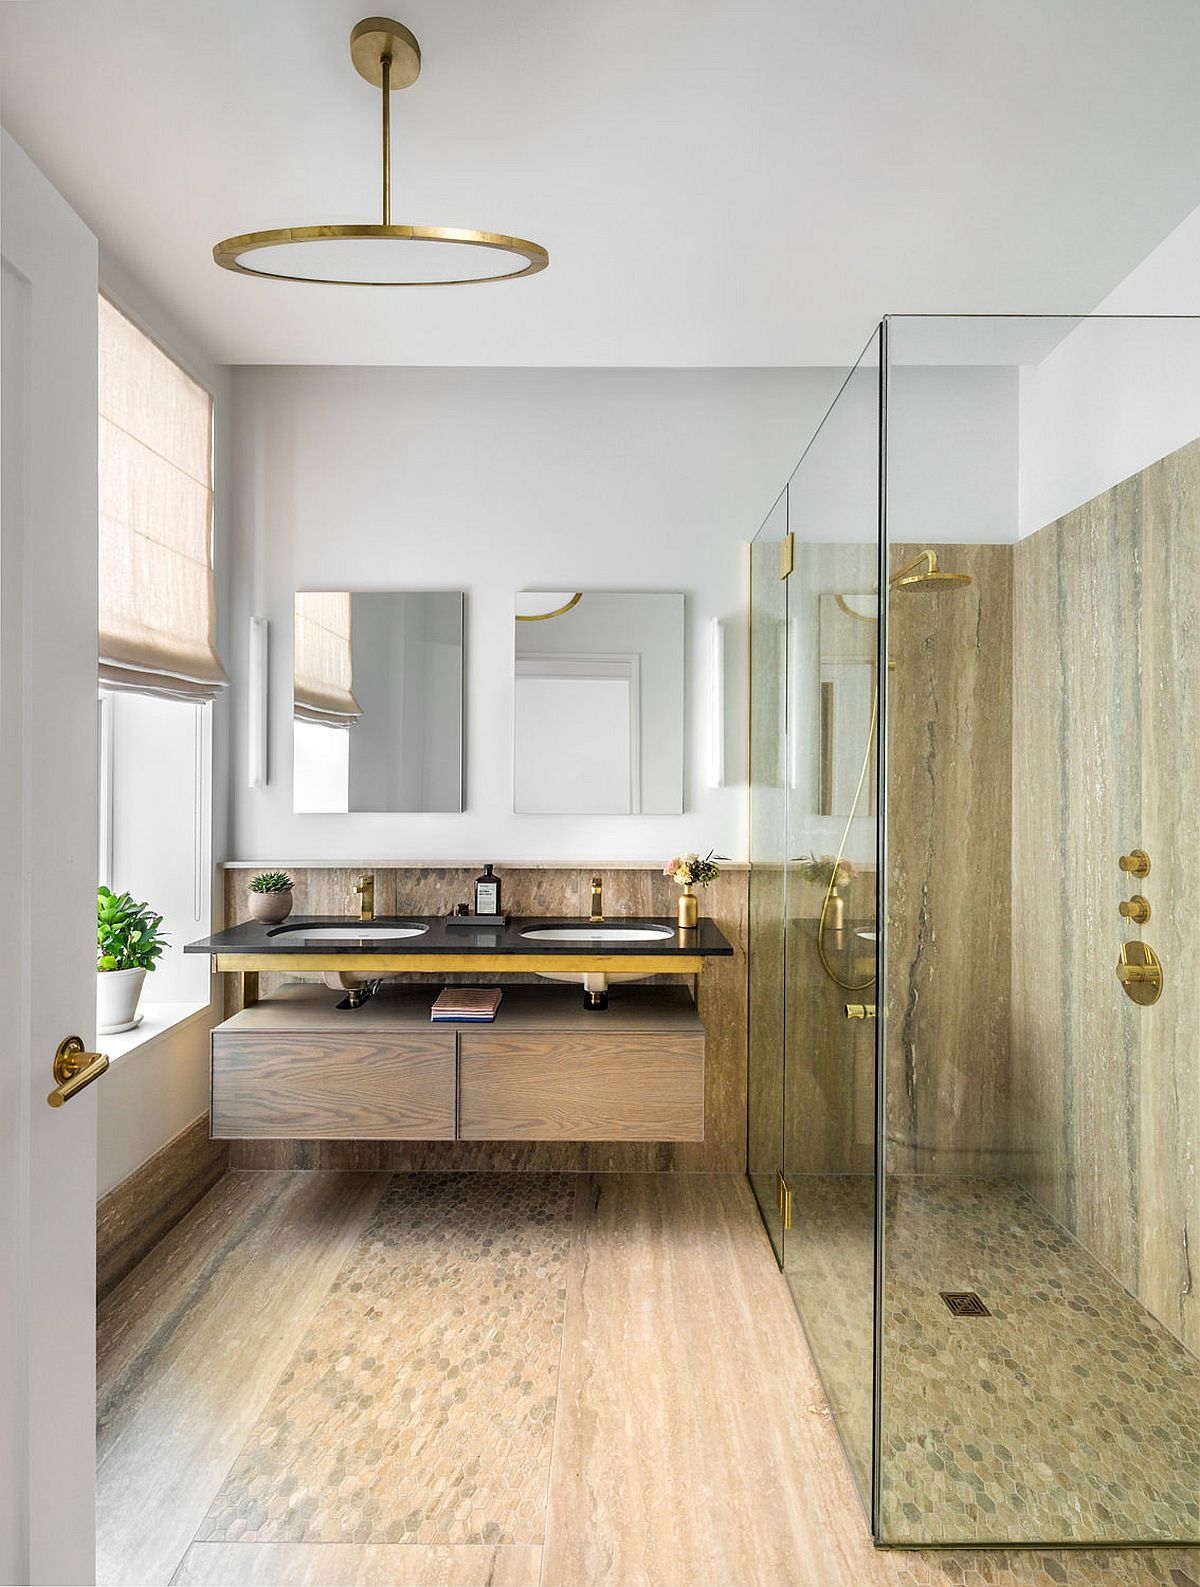 Glass shower area of the modern bathroom in white and wood